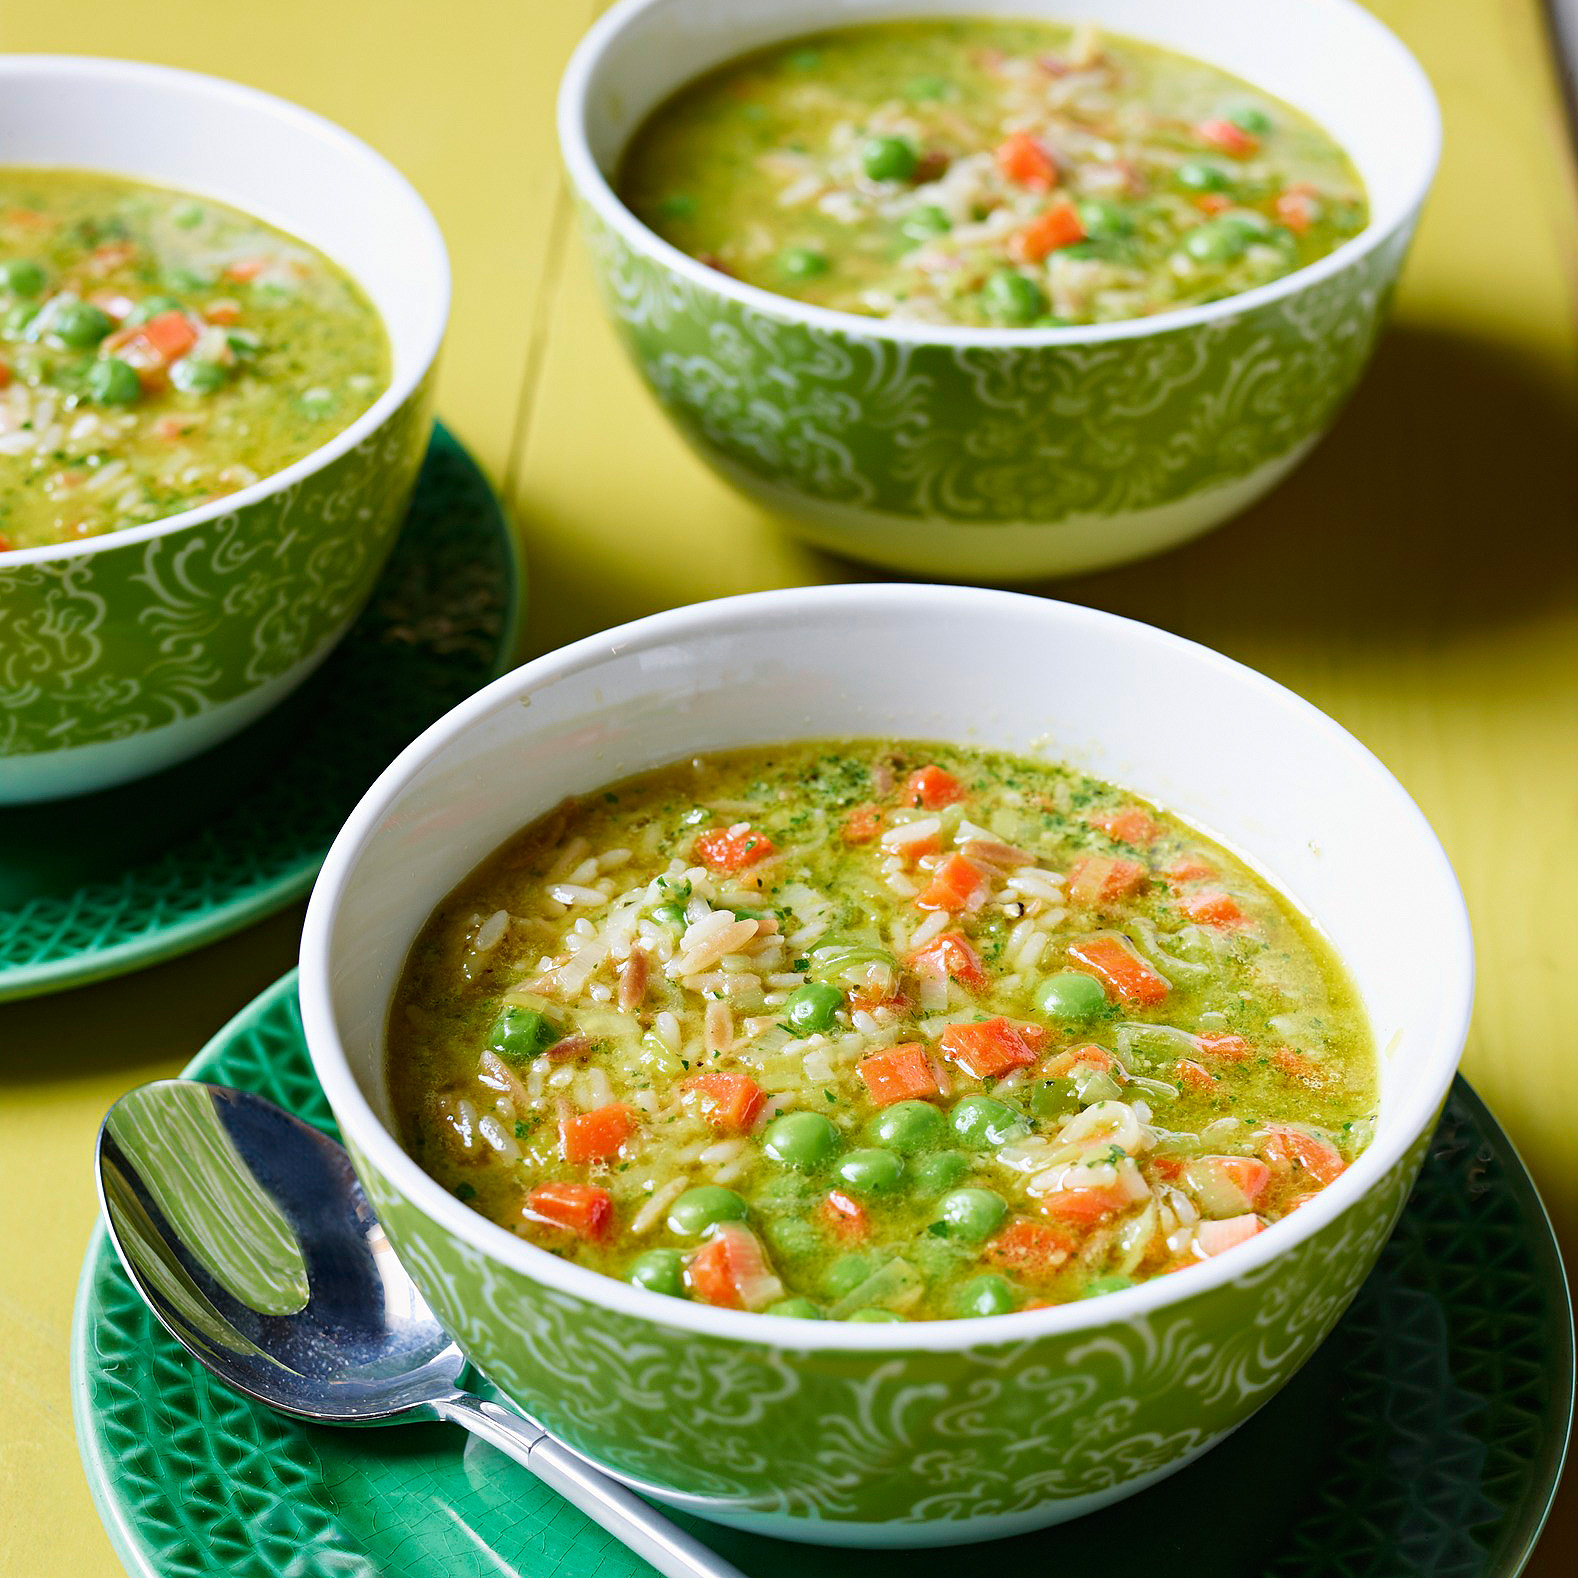 Pea & Carrot Soup with Rice